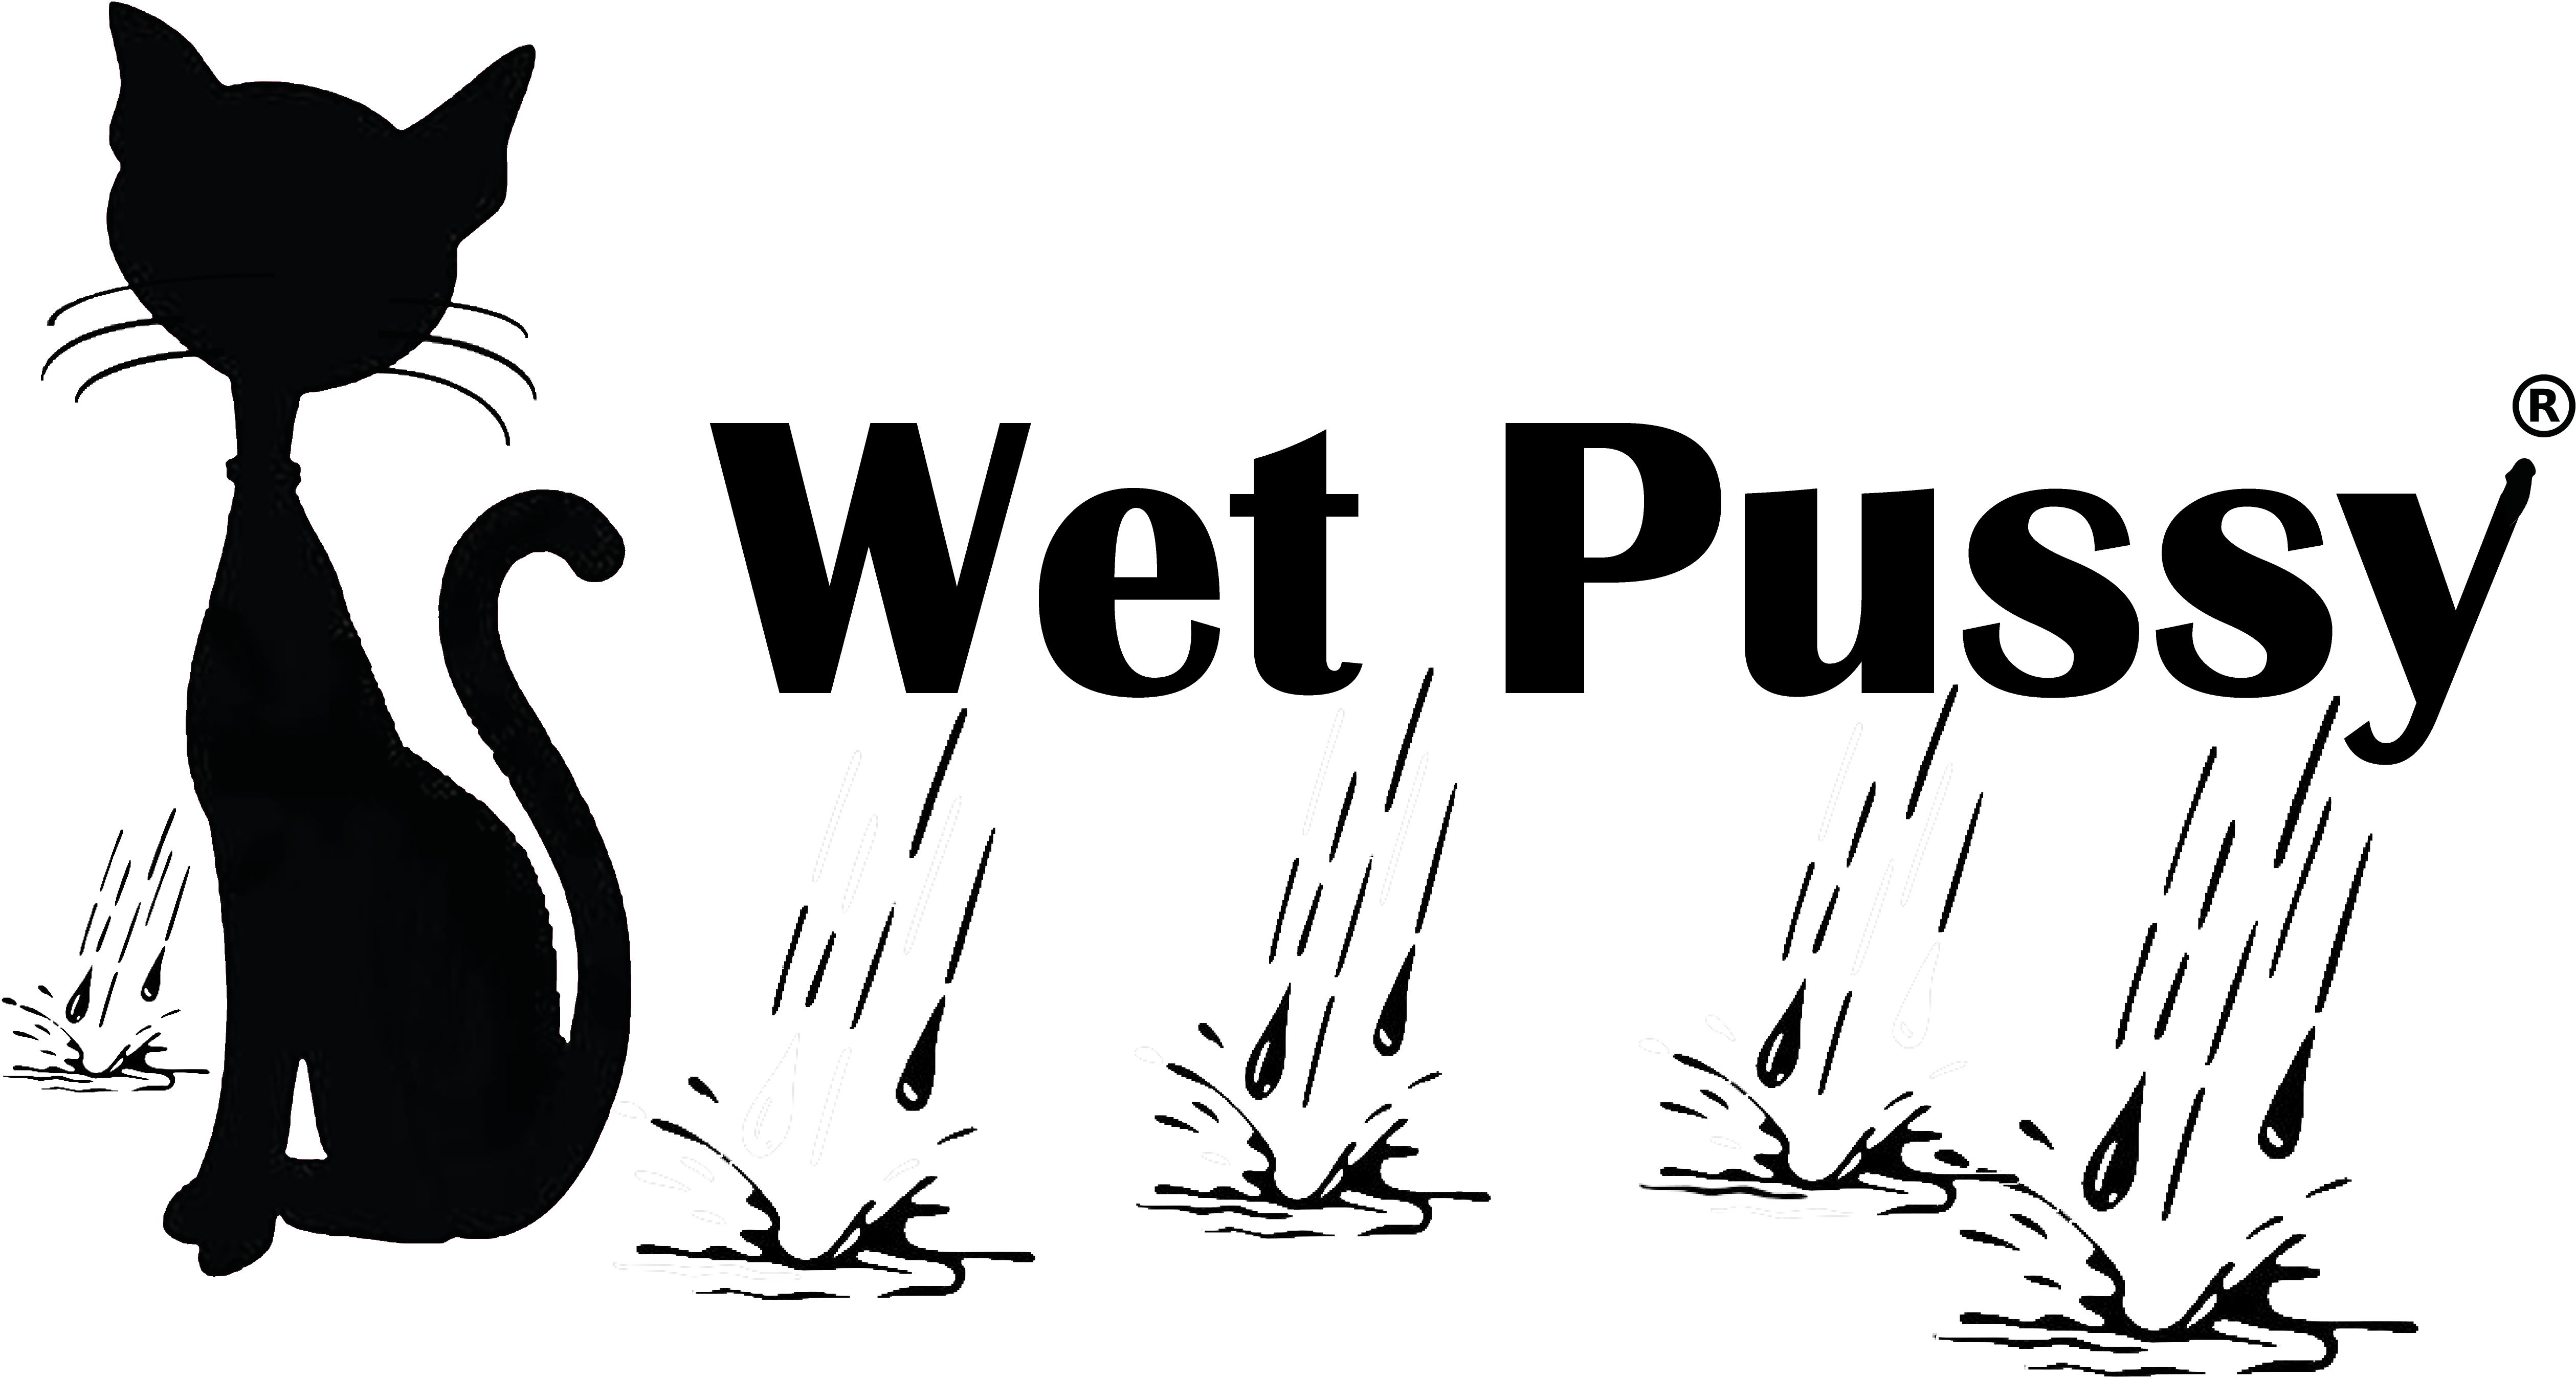 Wet Pussy Nicest Escort Girls for Hot Sex